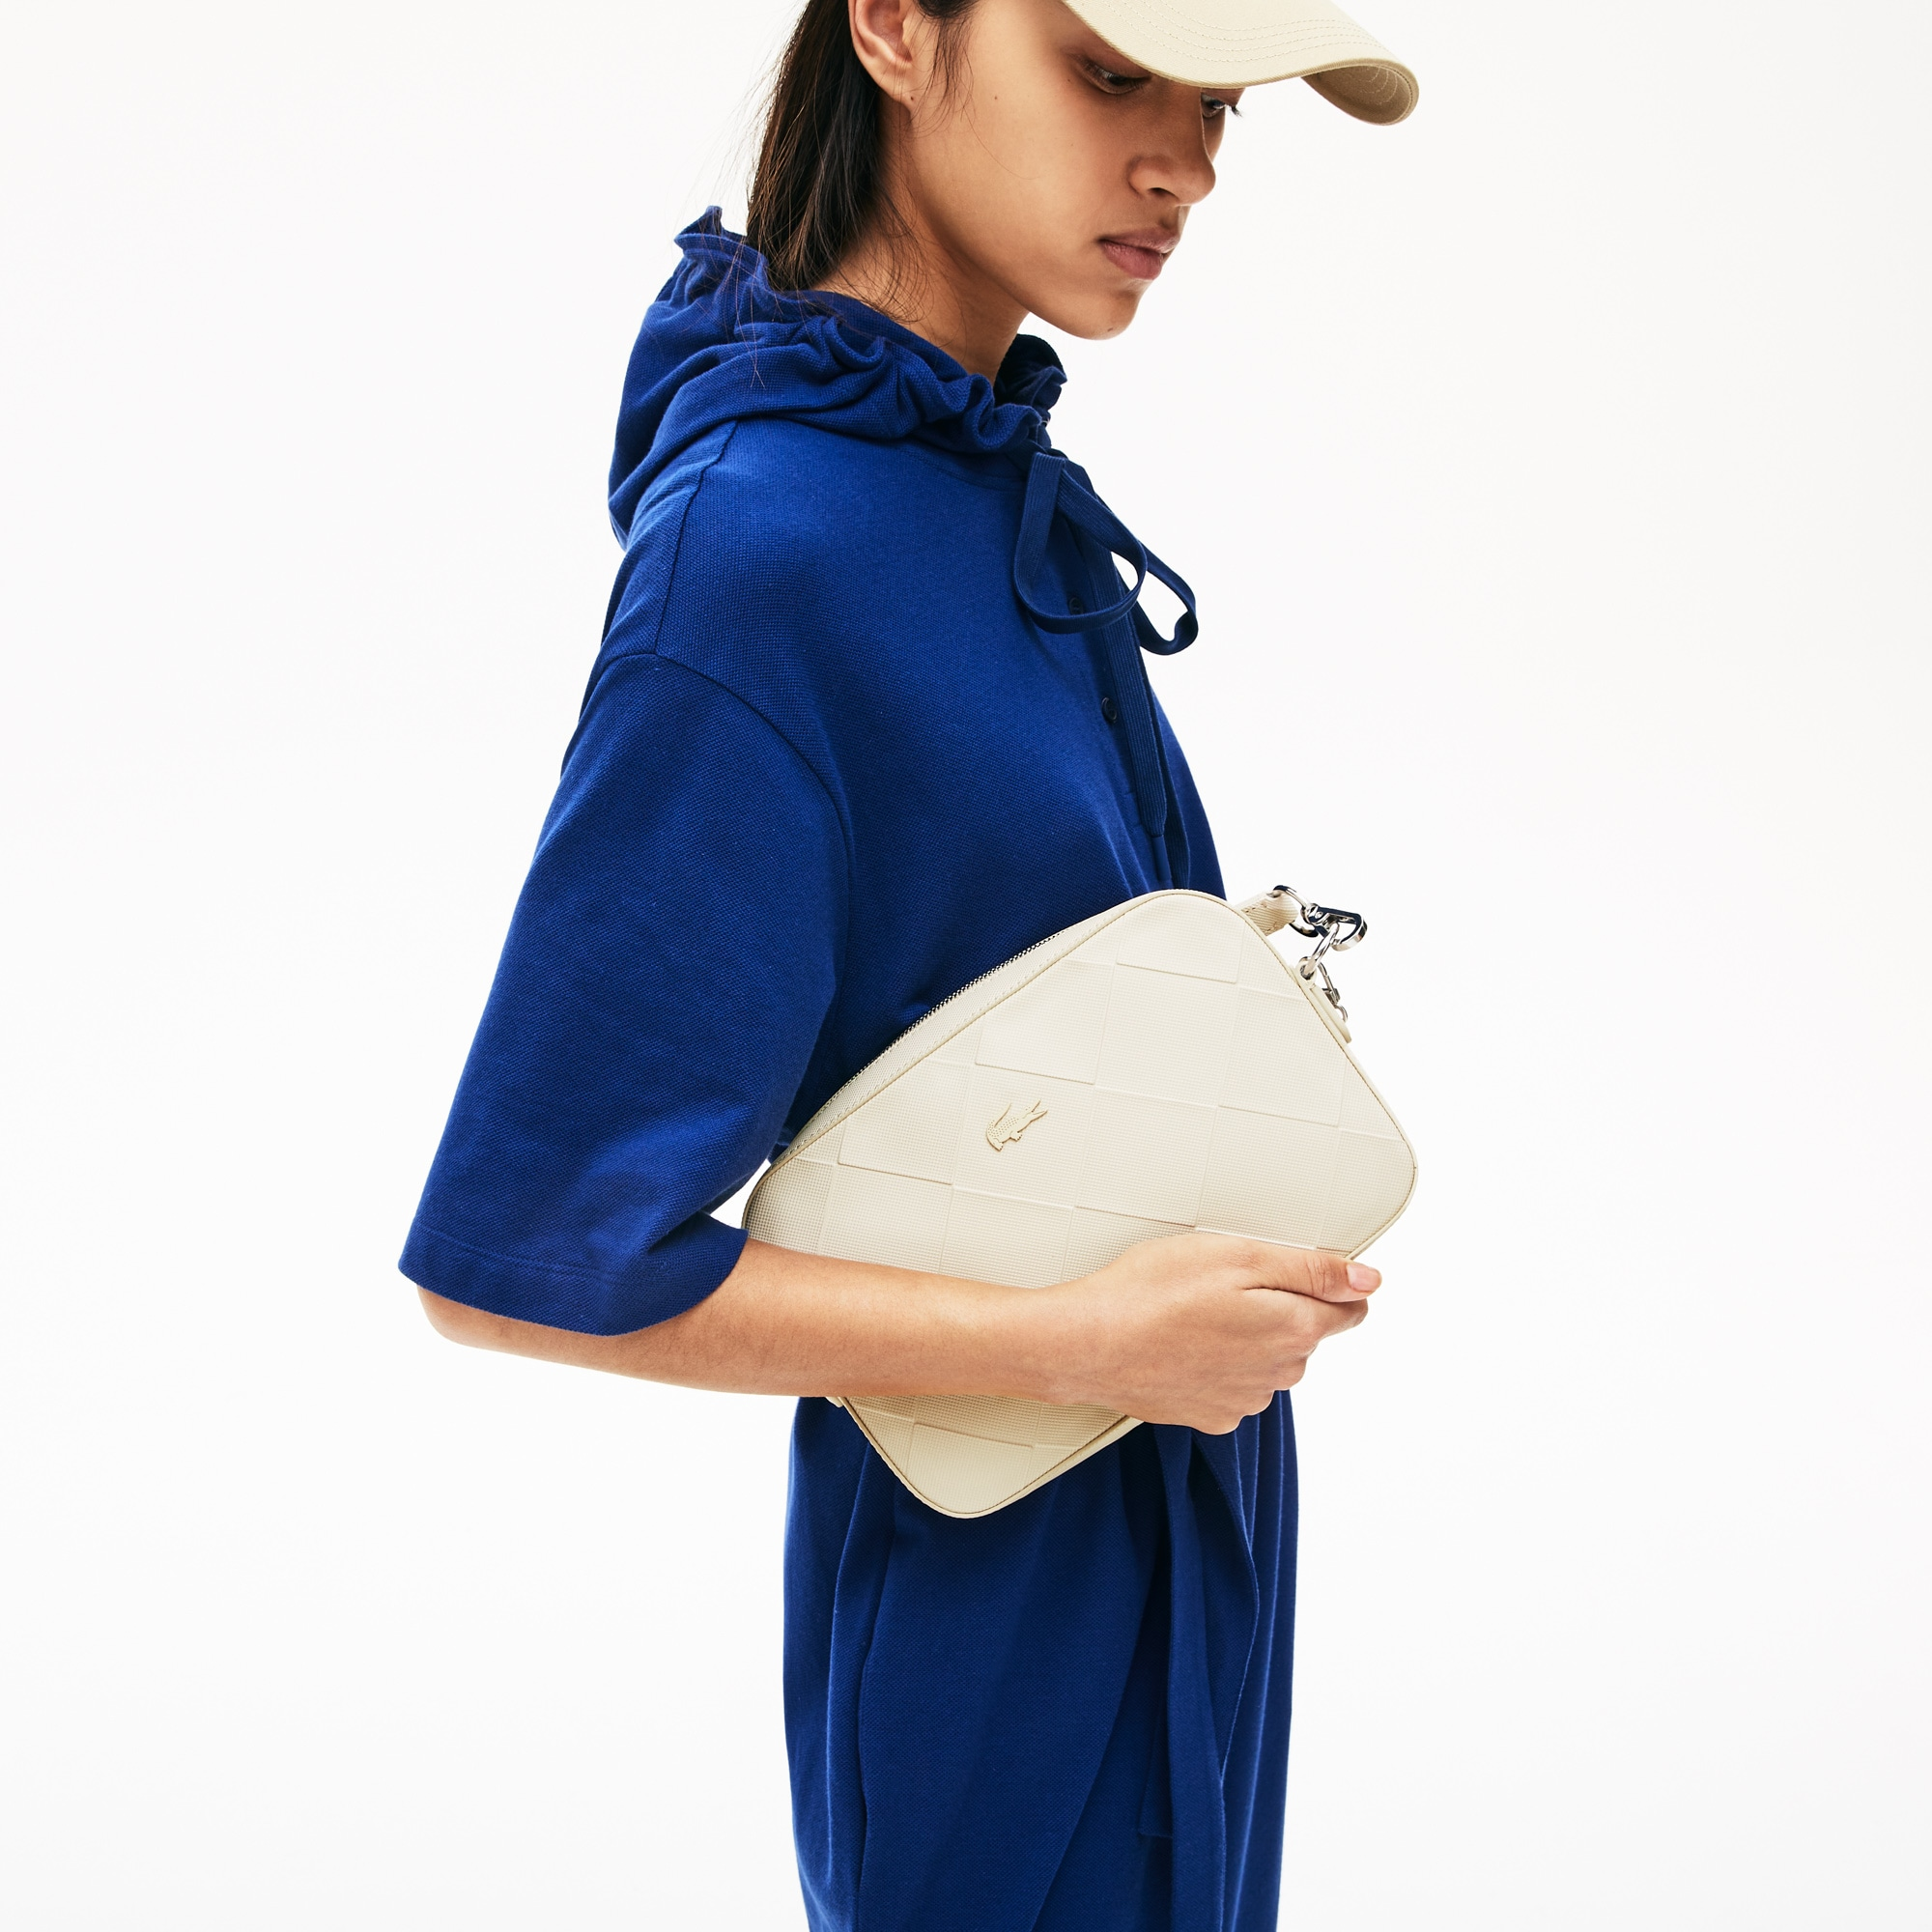 Lacoste Womens Quilted Crossover Bag